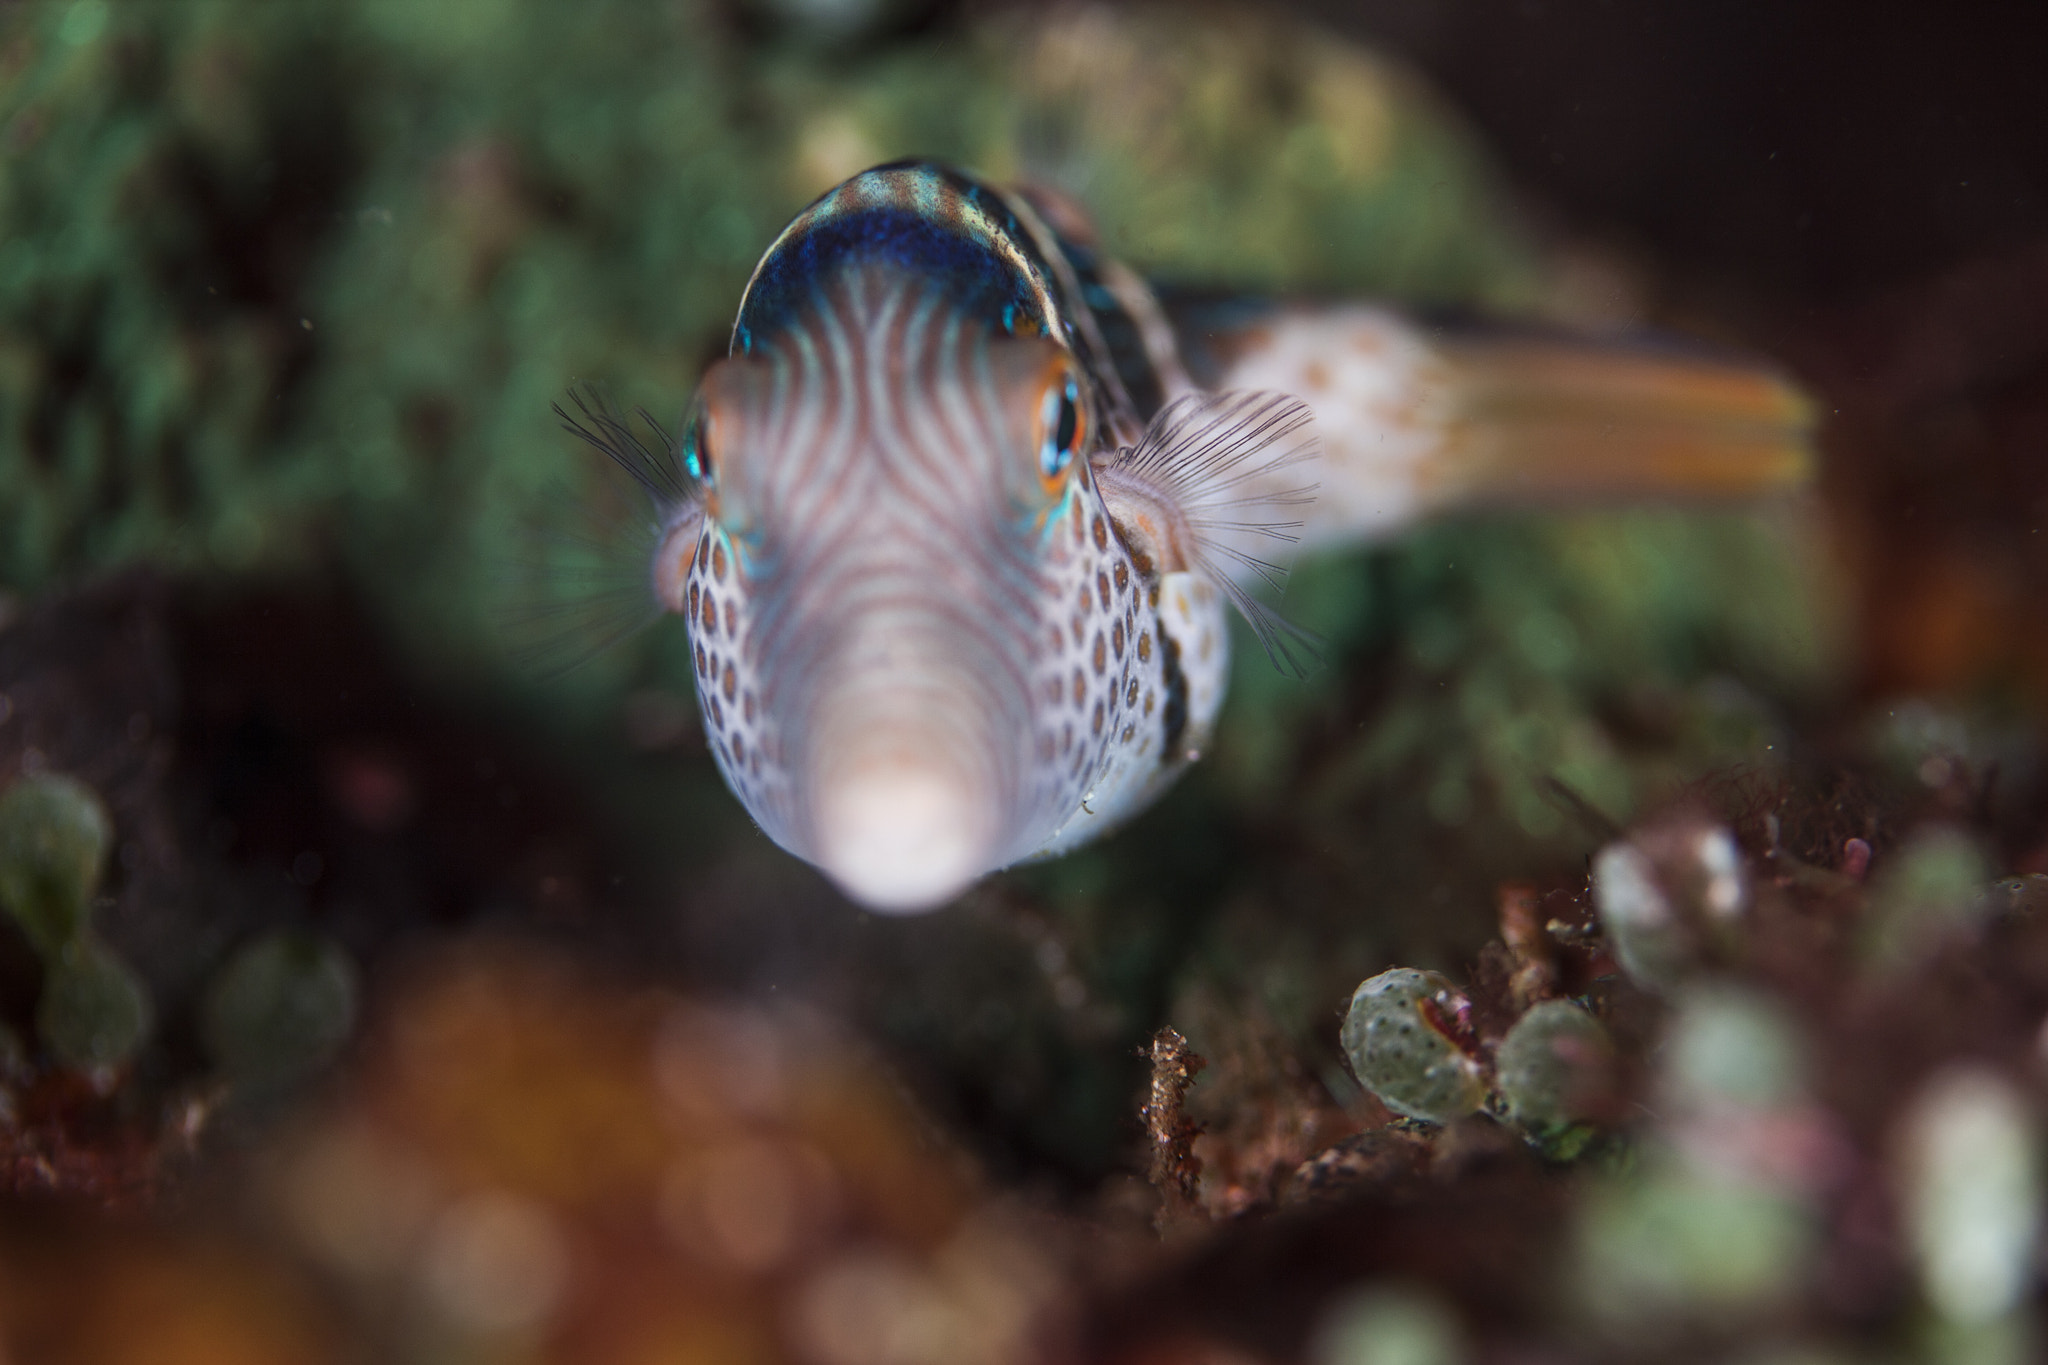 Photograph Filefish @ philippines PG by Sardon lee on 500px